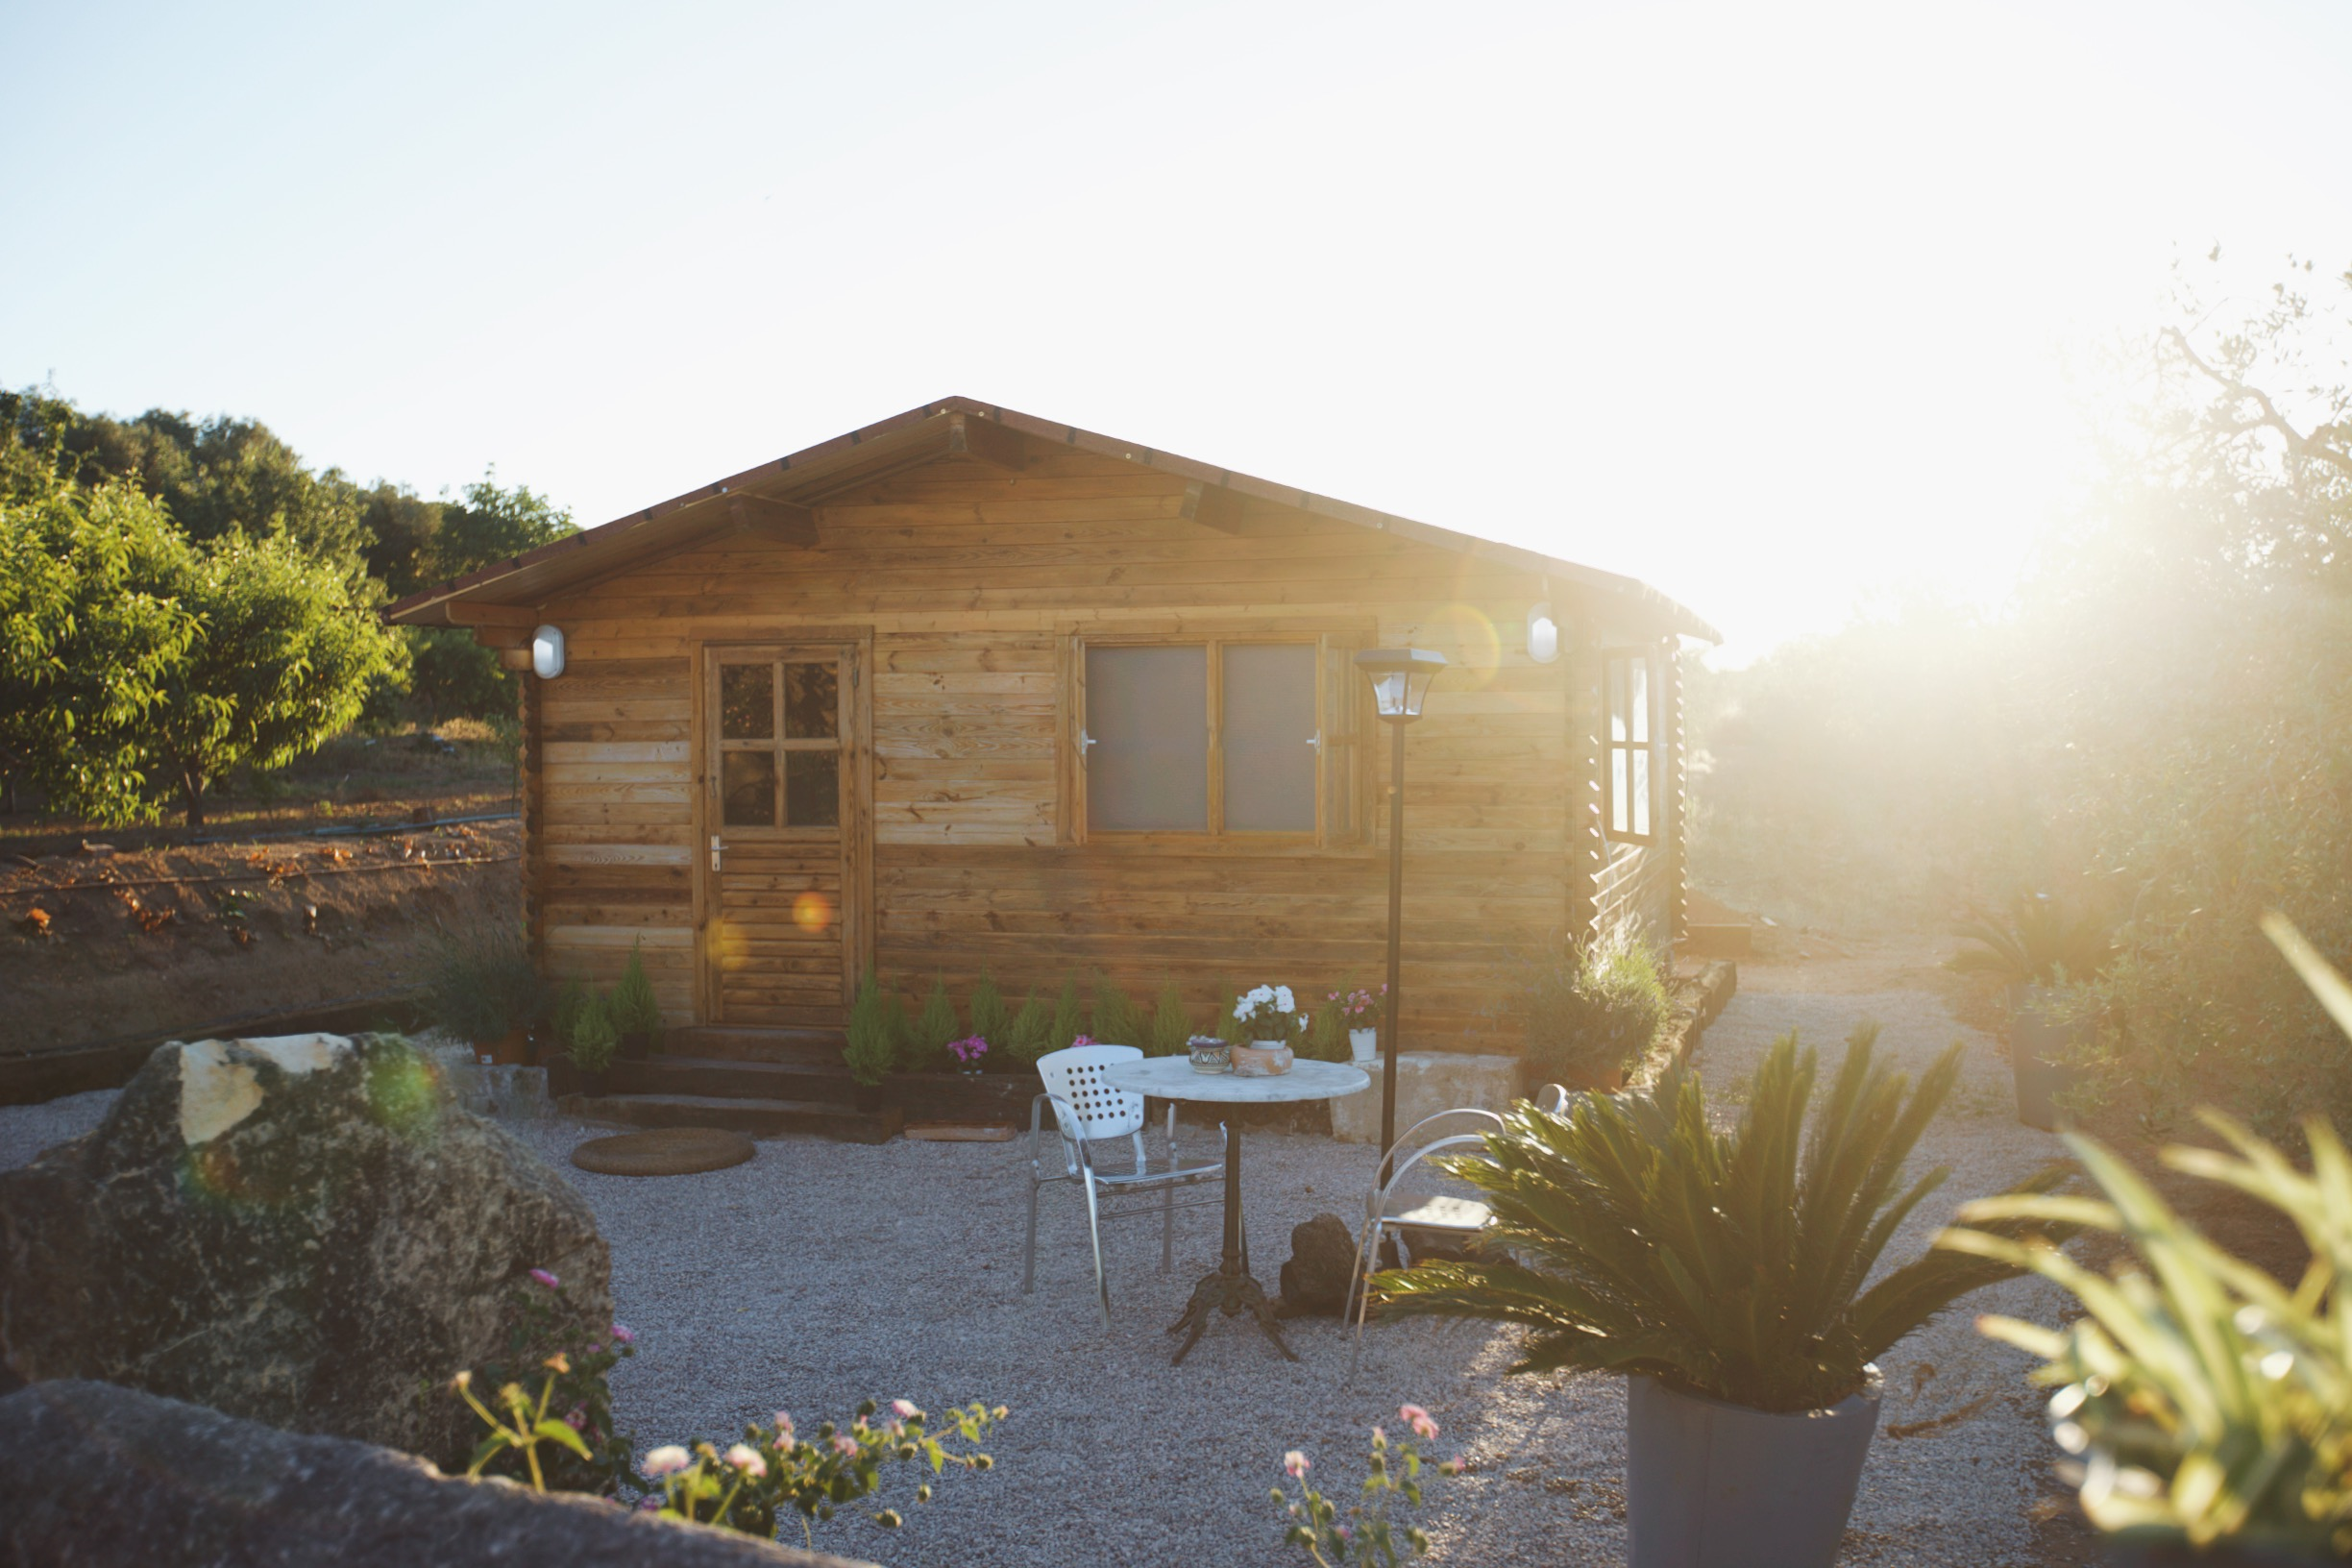 Making ideas real: Ramon Cabin — twoofolks